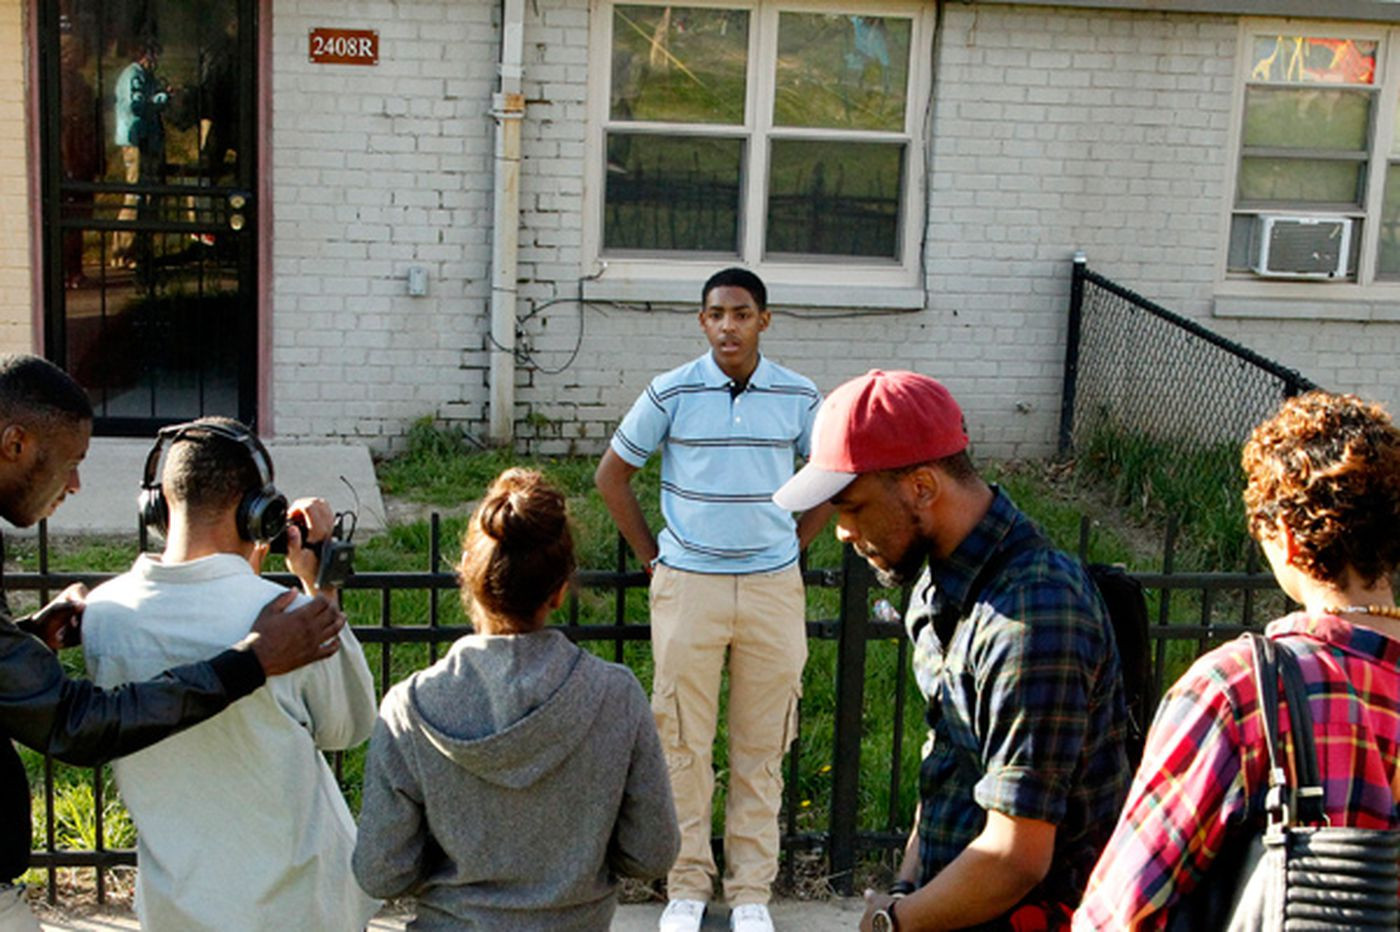 Students put feelings about their rough neighborhoods on video